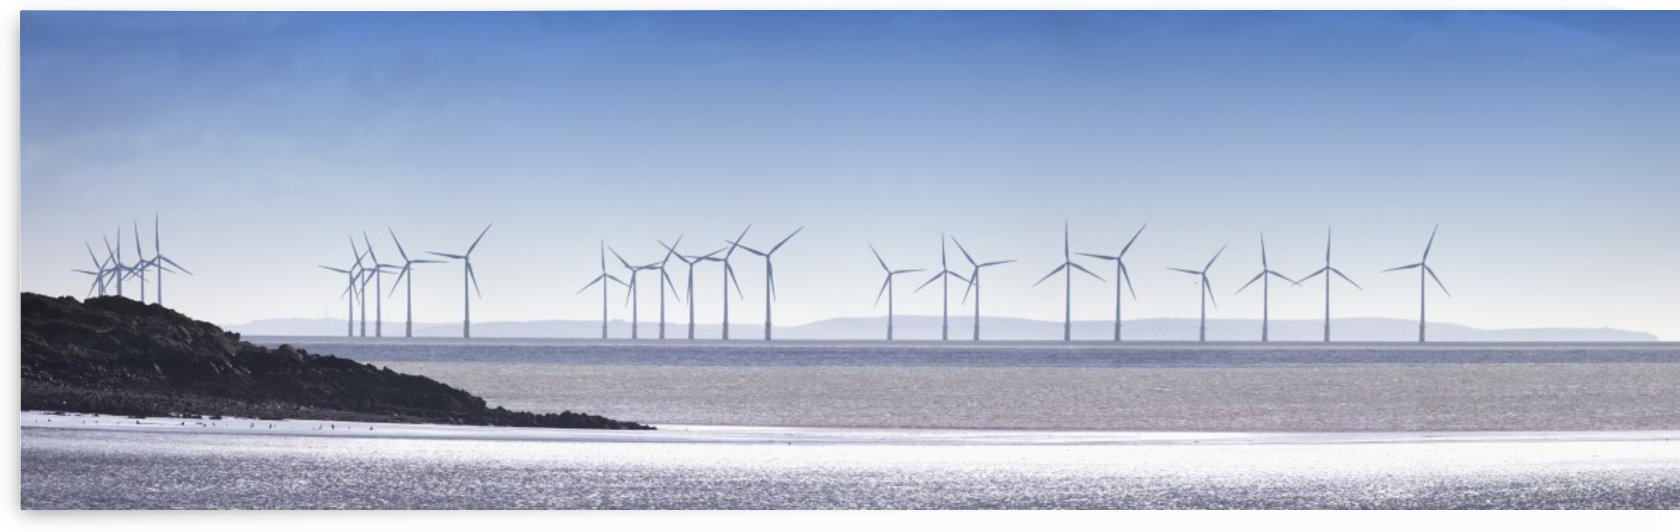 Wind Turbines Along The Coast; Solway Firth Dumfries Scotland by PacificStock